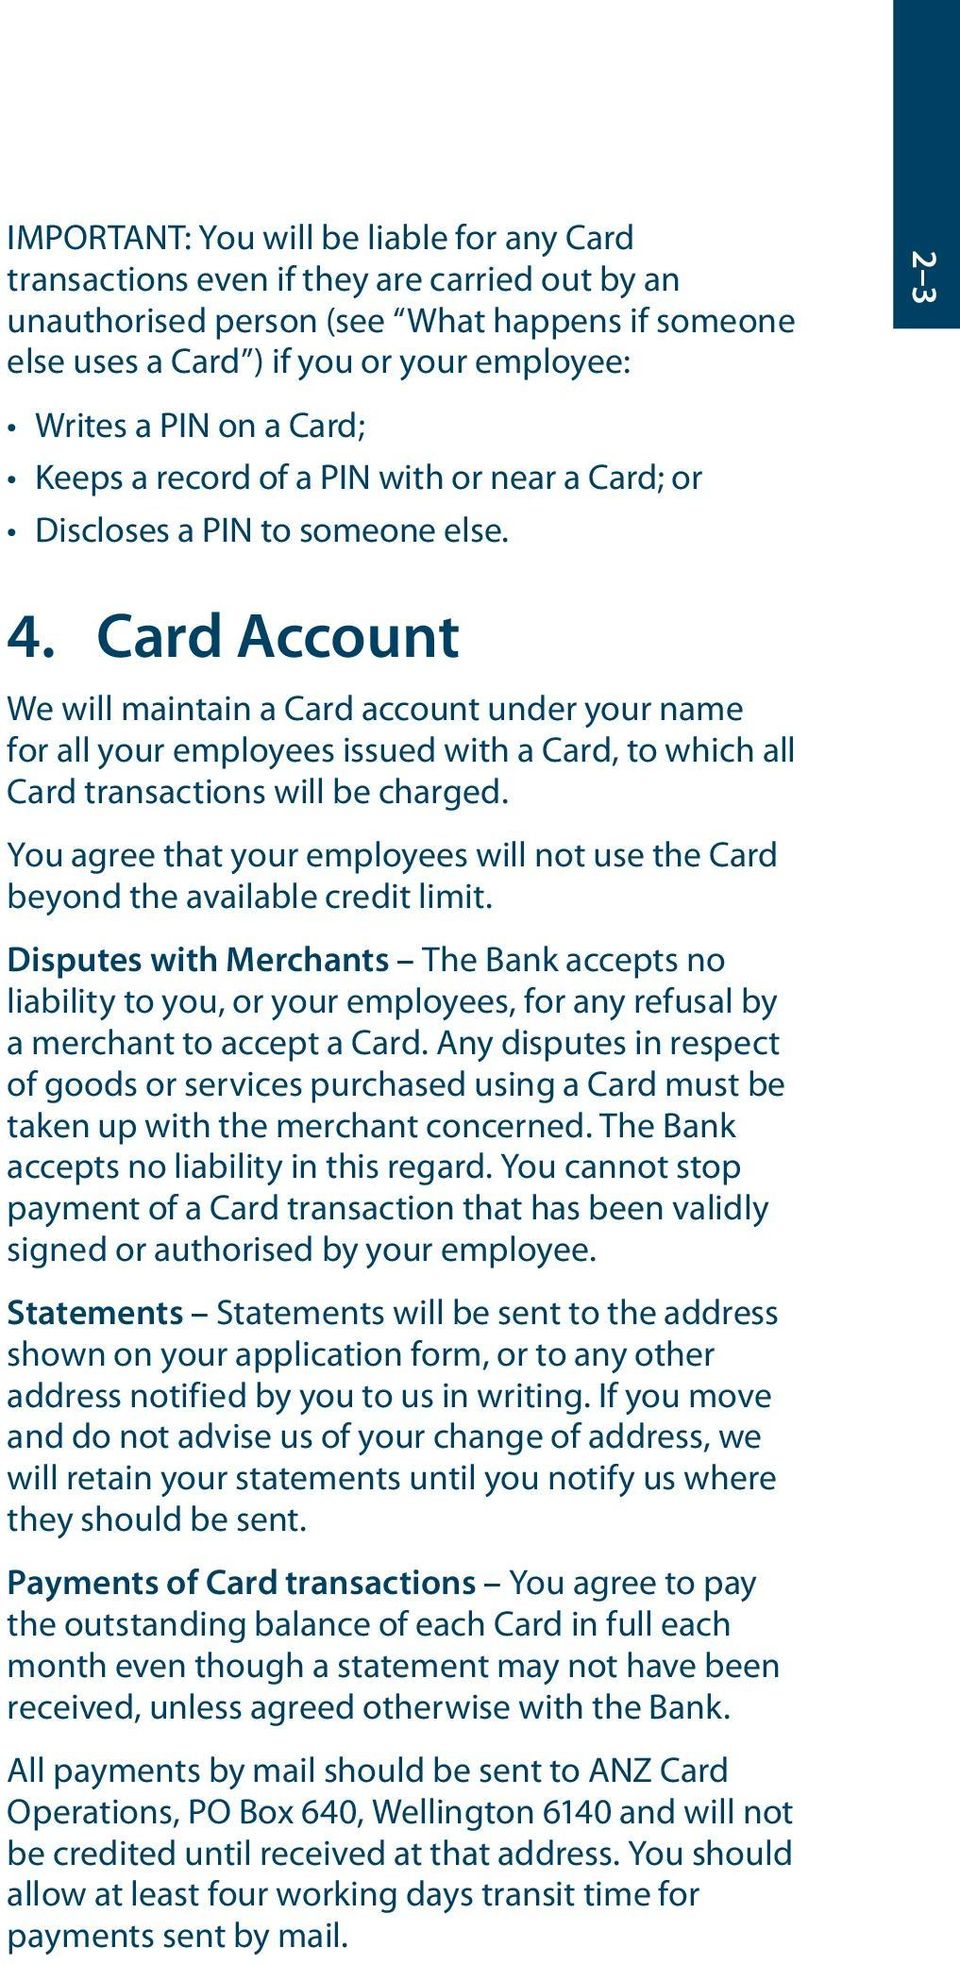 Card Account We will maintain a Card account under your name for all your employees issued with a Card, to which all Card transactions will be charged.